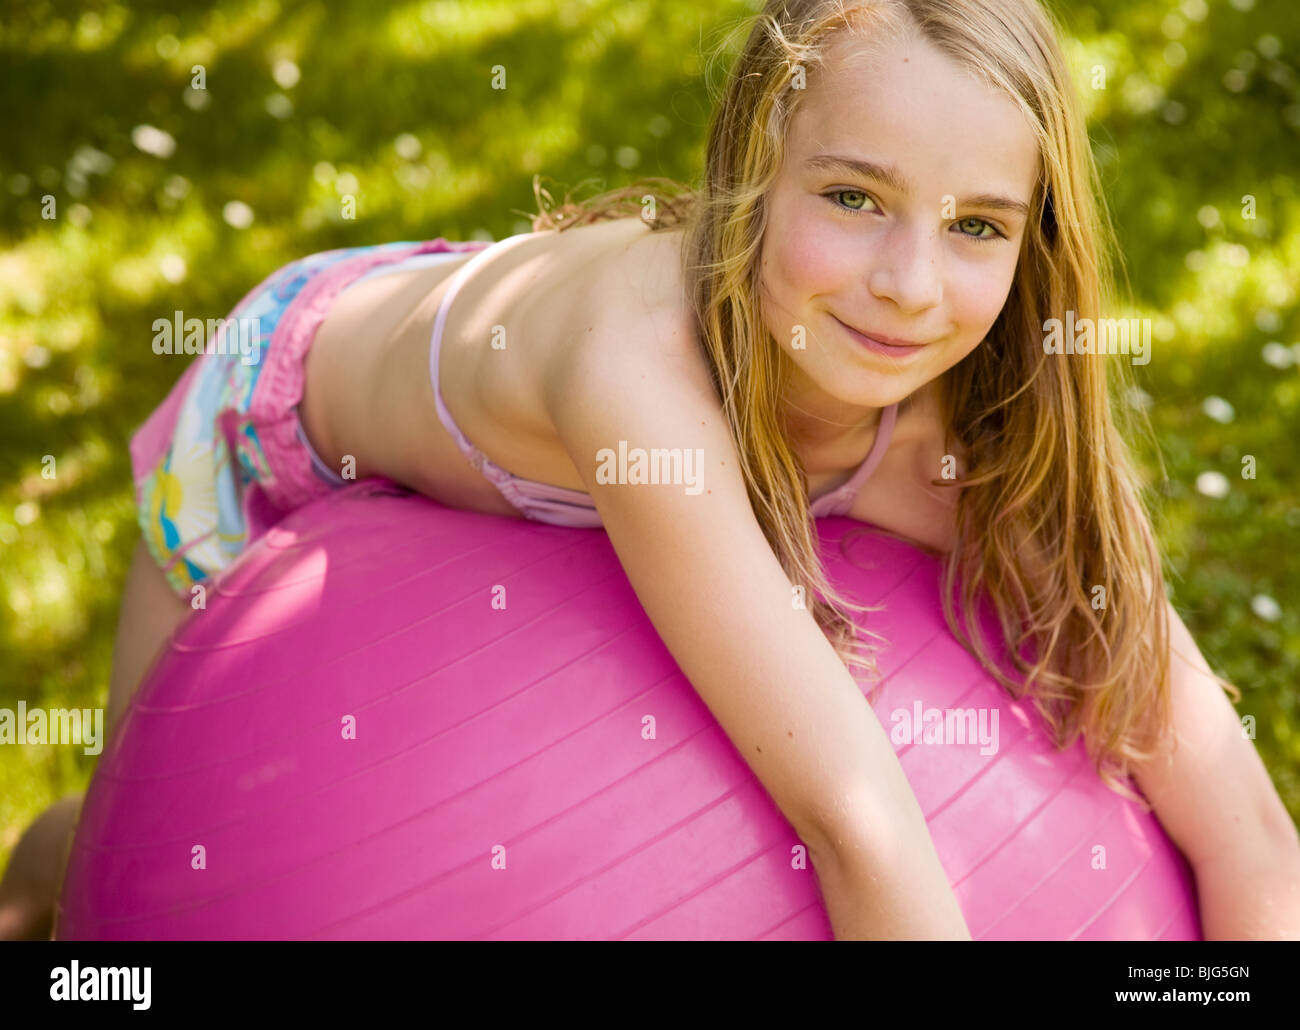 youngster girls Portrait of young blonde girl lying on pink ball smiling - Stock Image